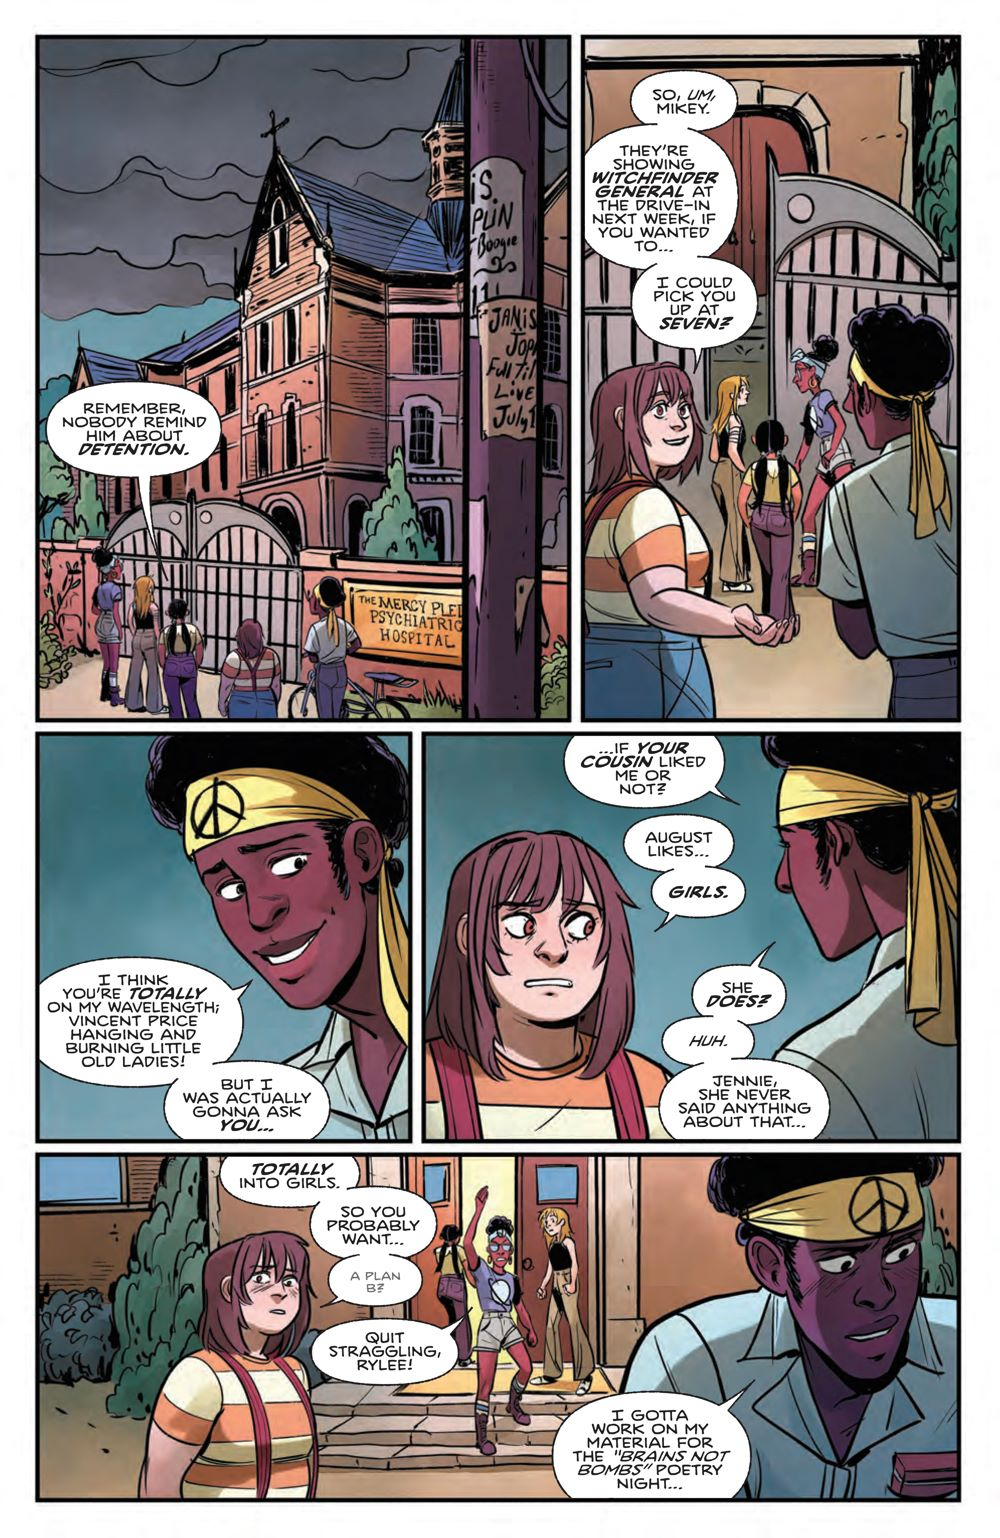 ProctorValleyRoad_004_PRESS_7 ComicList Previews: PROCTOR VALLEY ROAD #4 (OF 5)